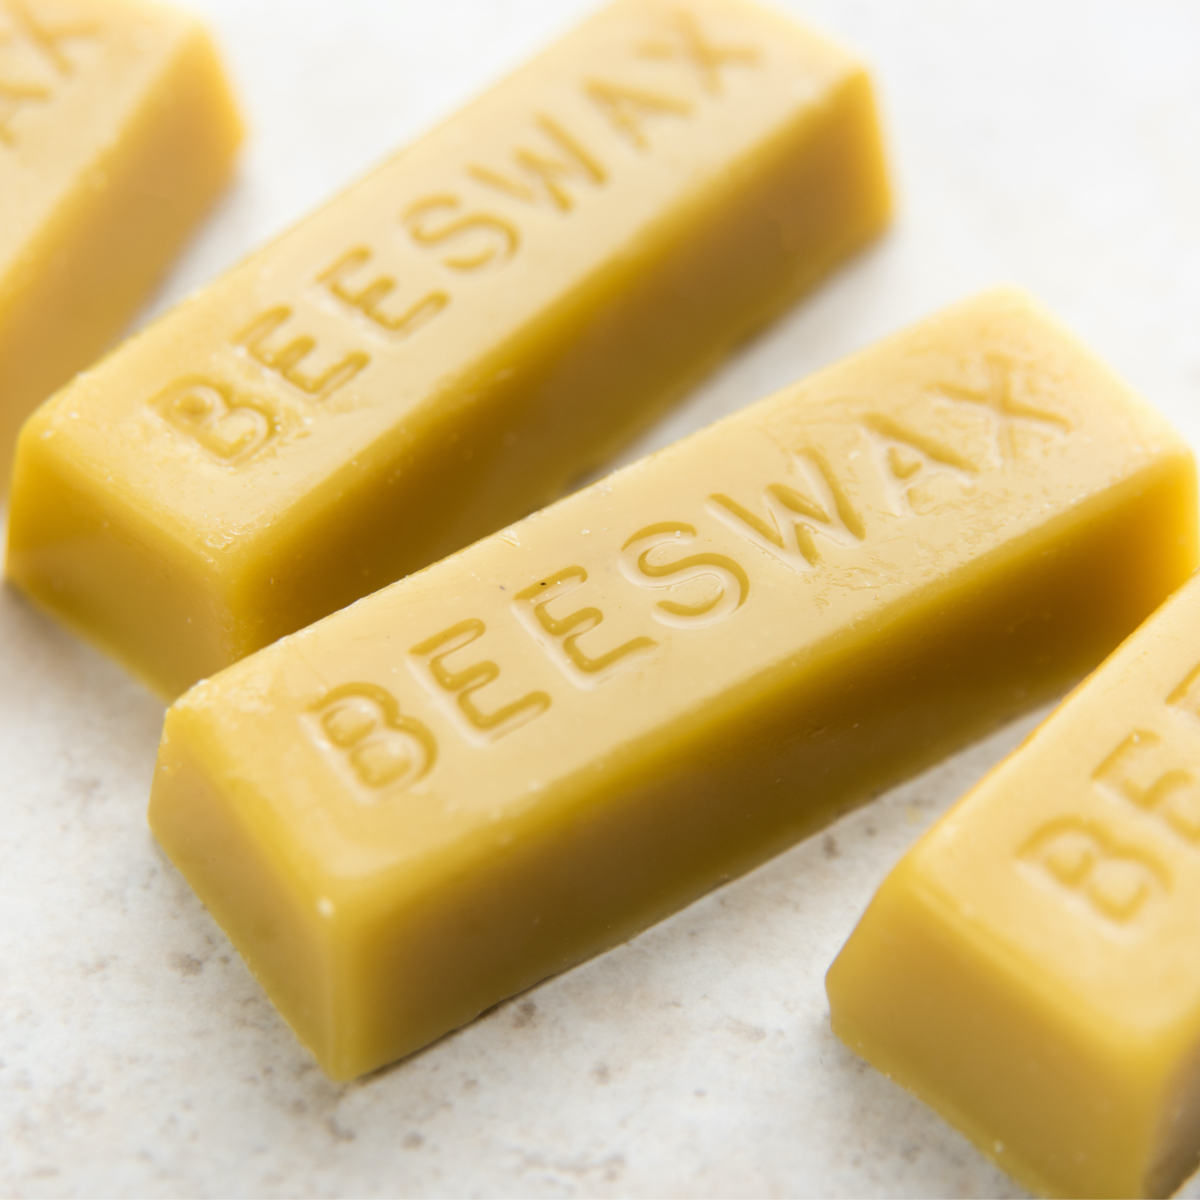 We use natural beeswax in our balms and candles